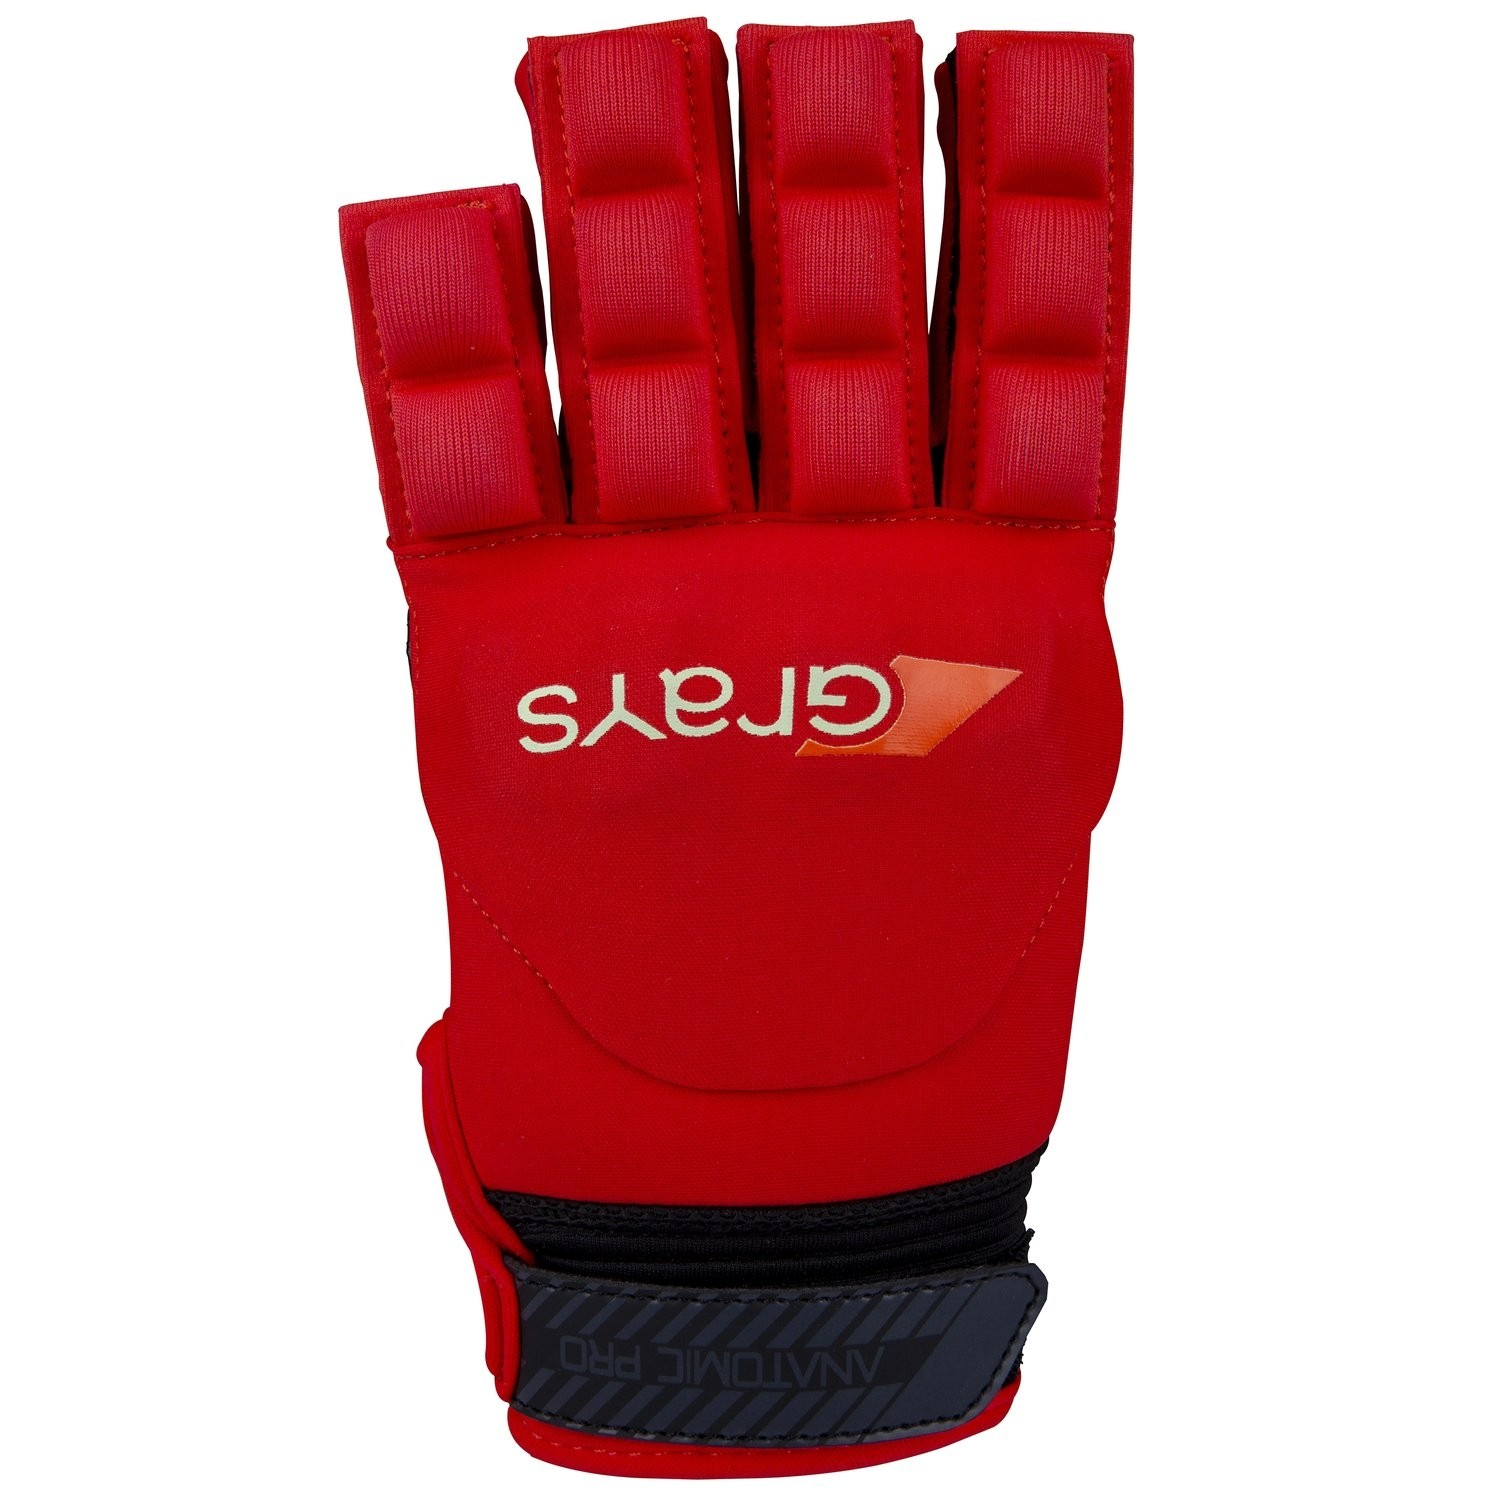 2020/21 Grays Anatomic Pro Hockey Glove - Fluo Red